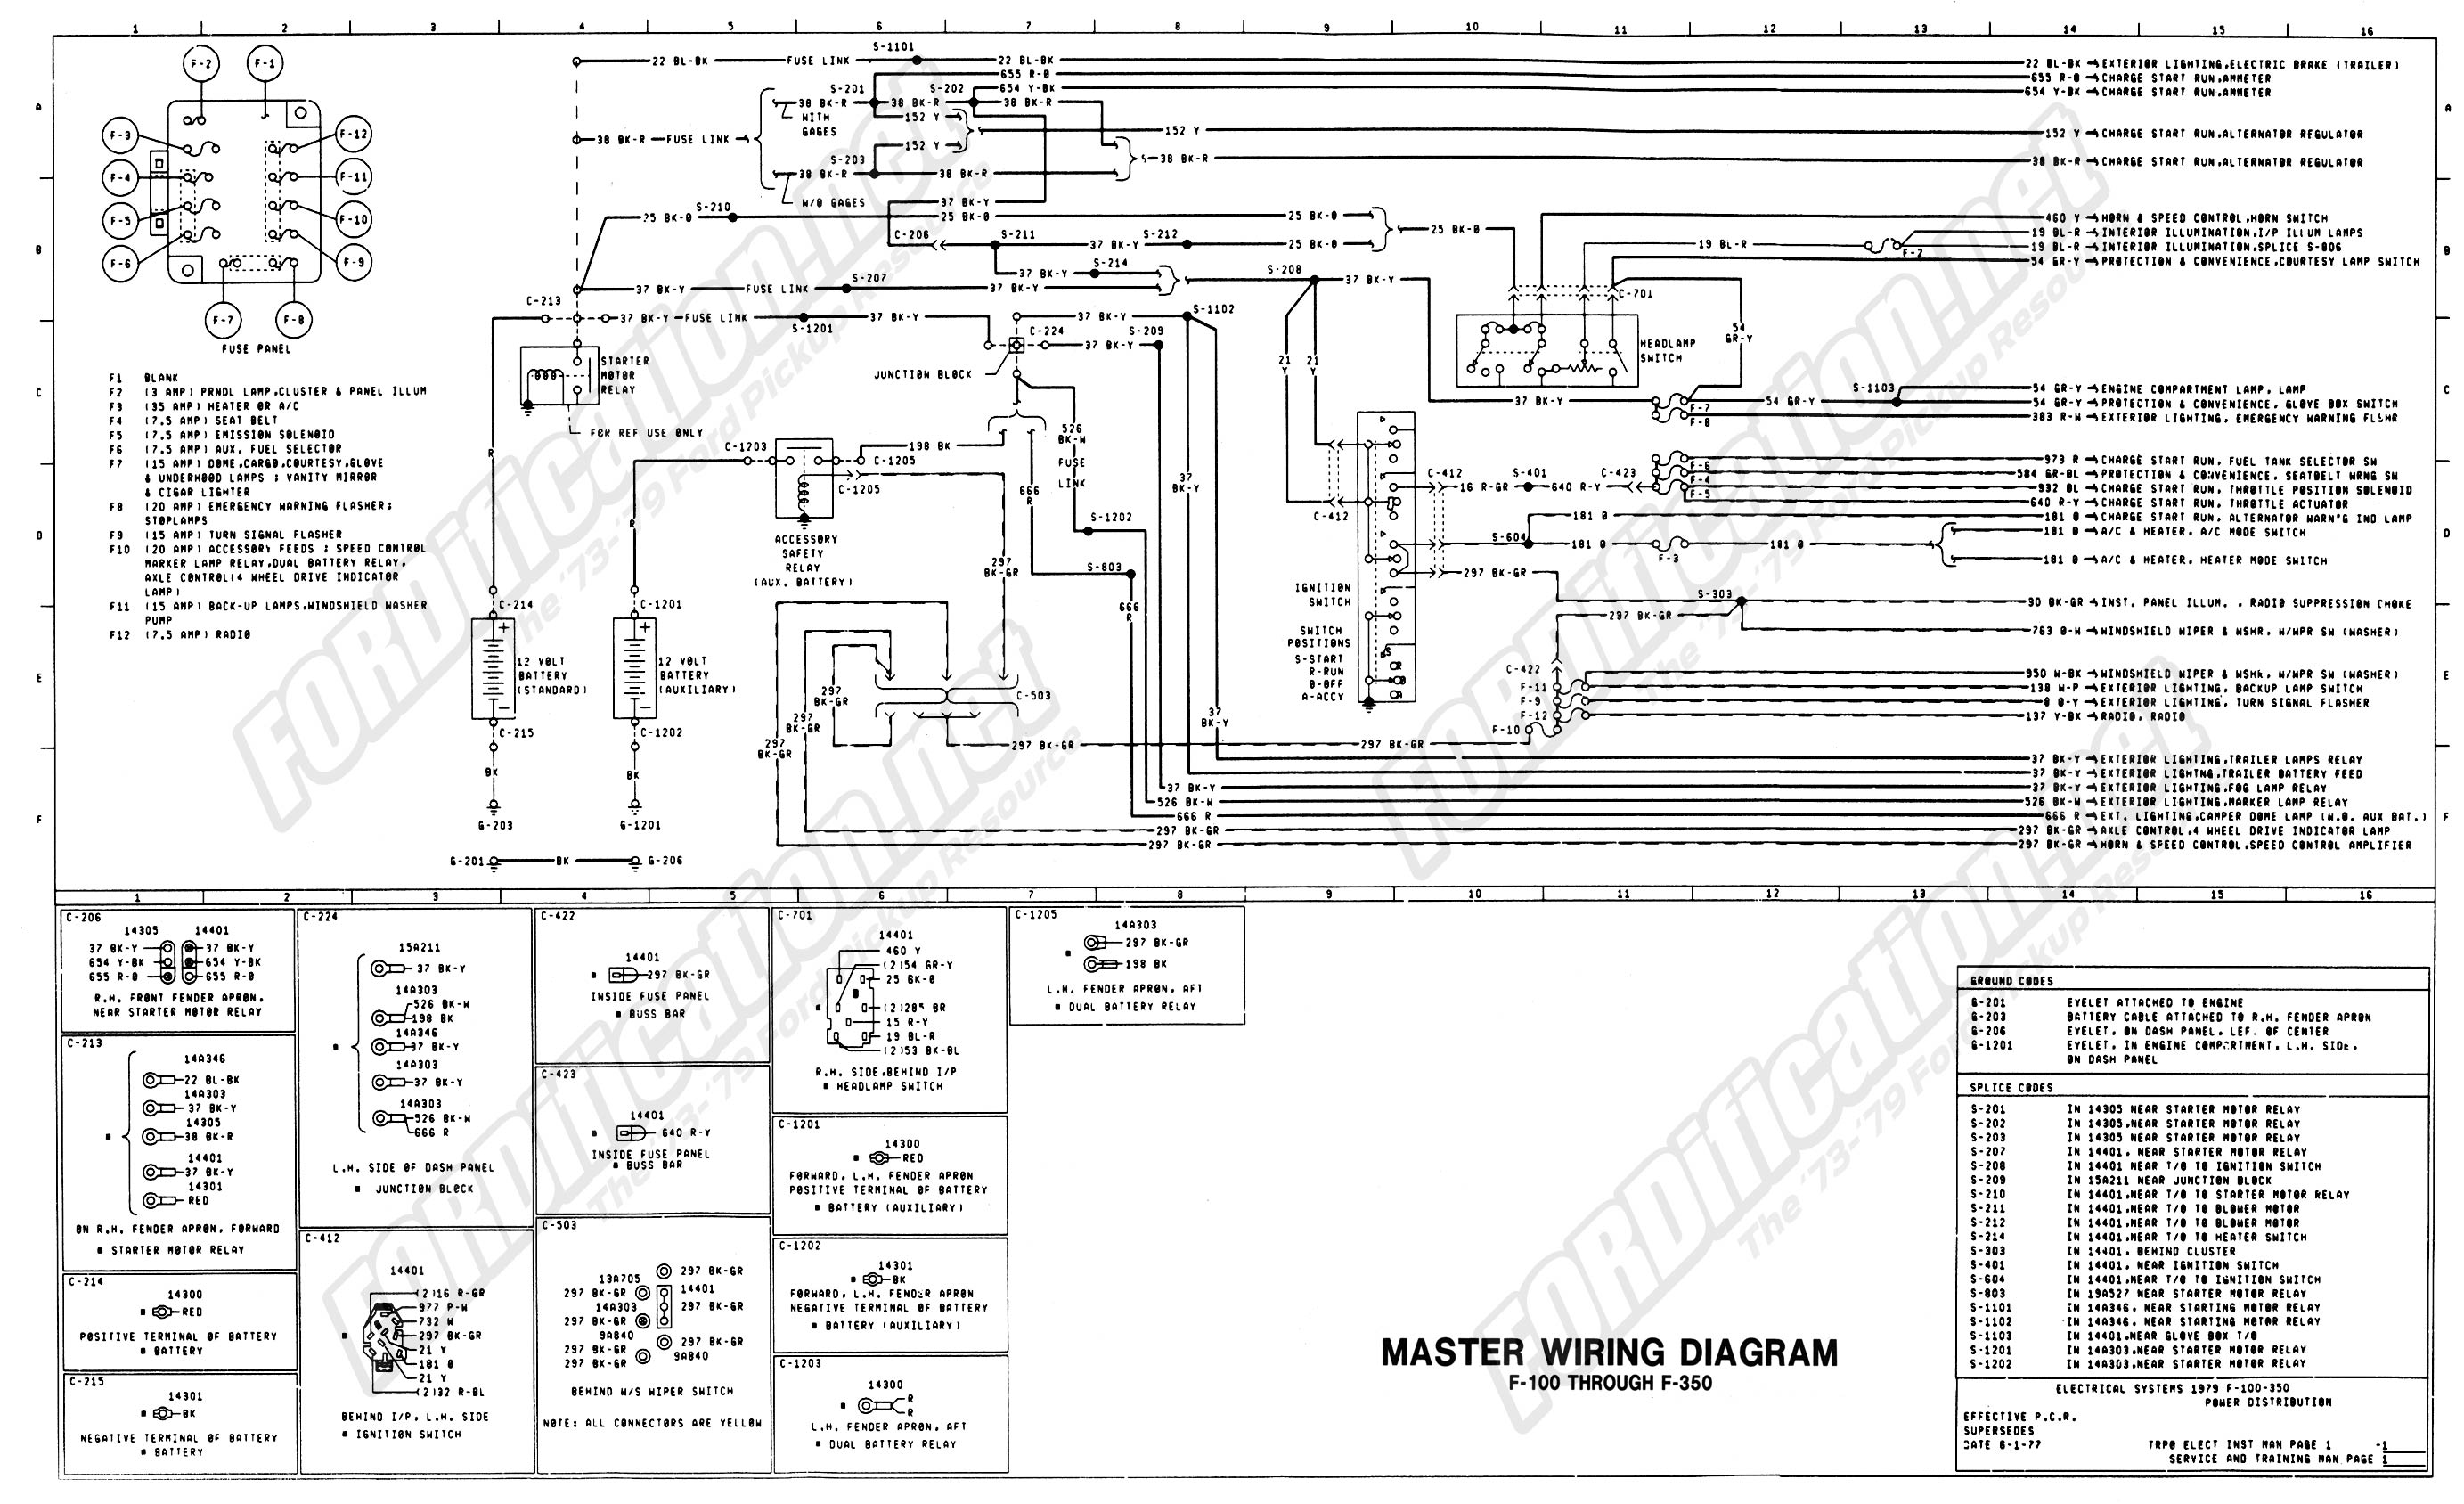 wiring_79master_1of9 1973 1979 ford truck wiring diagrams & schematics fordification net 1979 Corvette Fuse Box Diagram at crackthecode.co